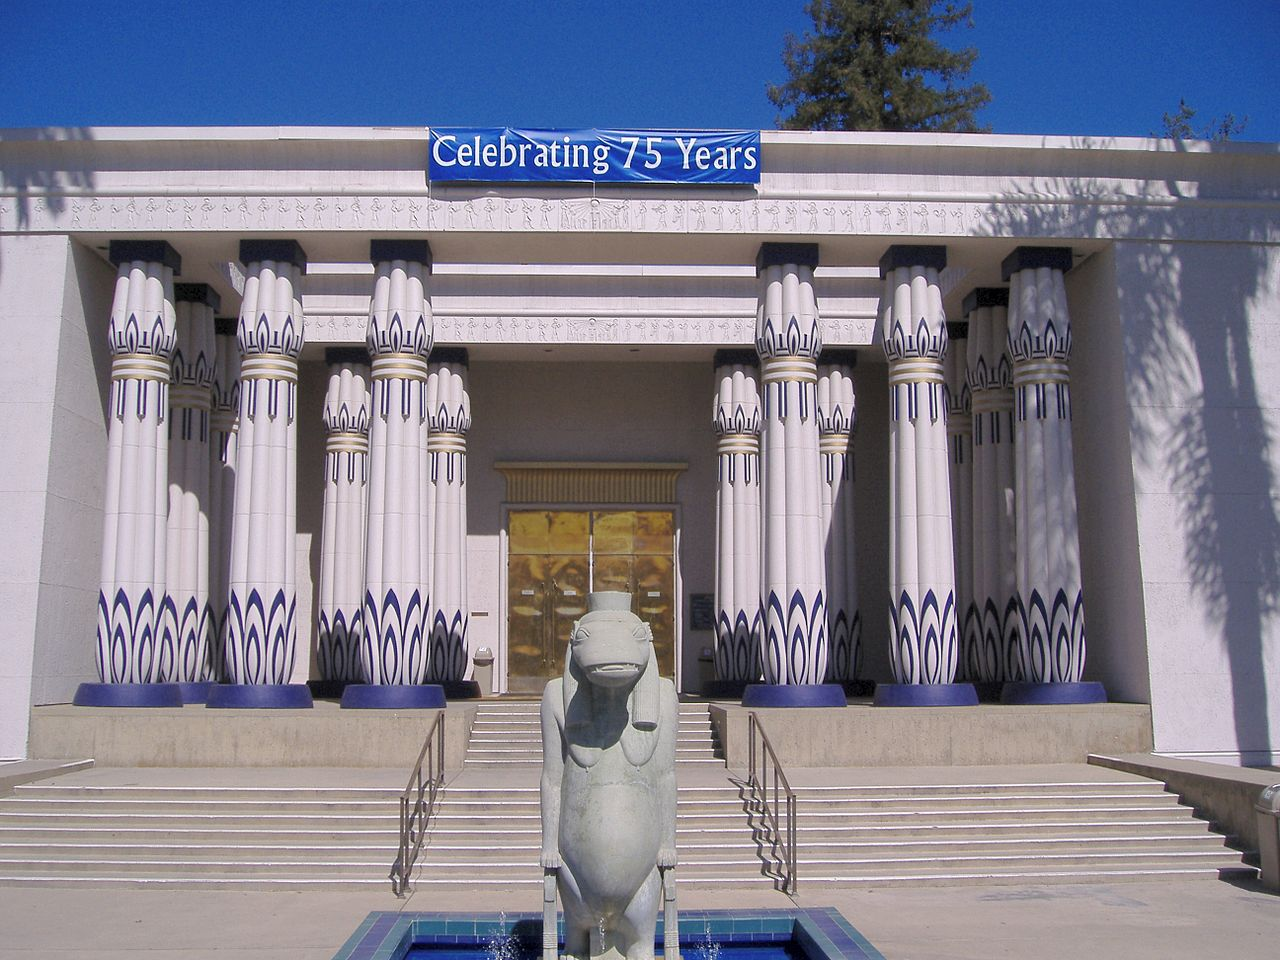 Most Popular Tourist Place To Visit In San Jose-Rosicrucian Egyptian Museum